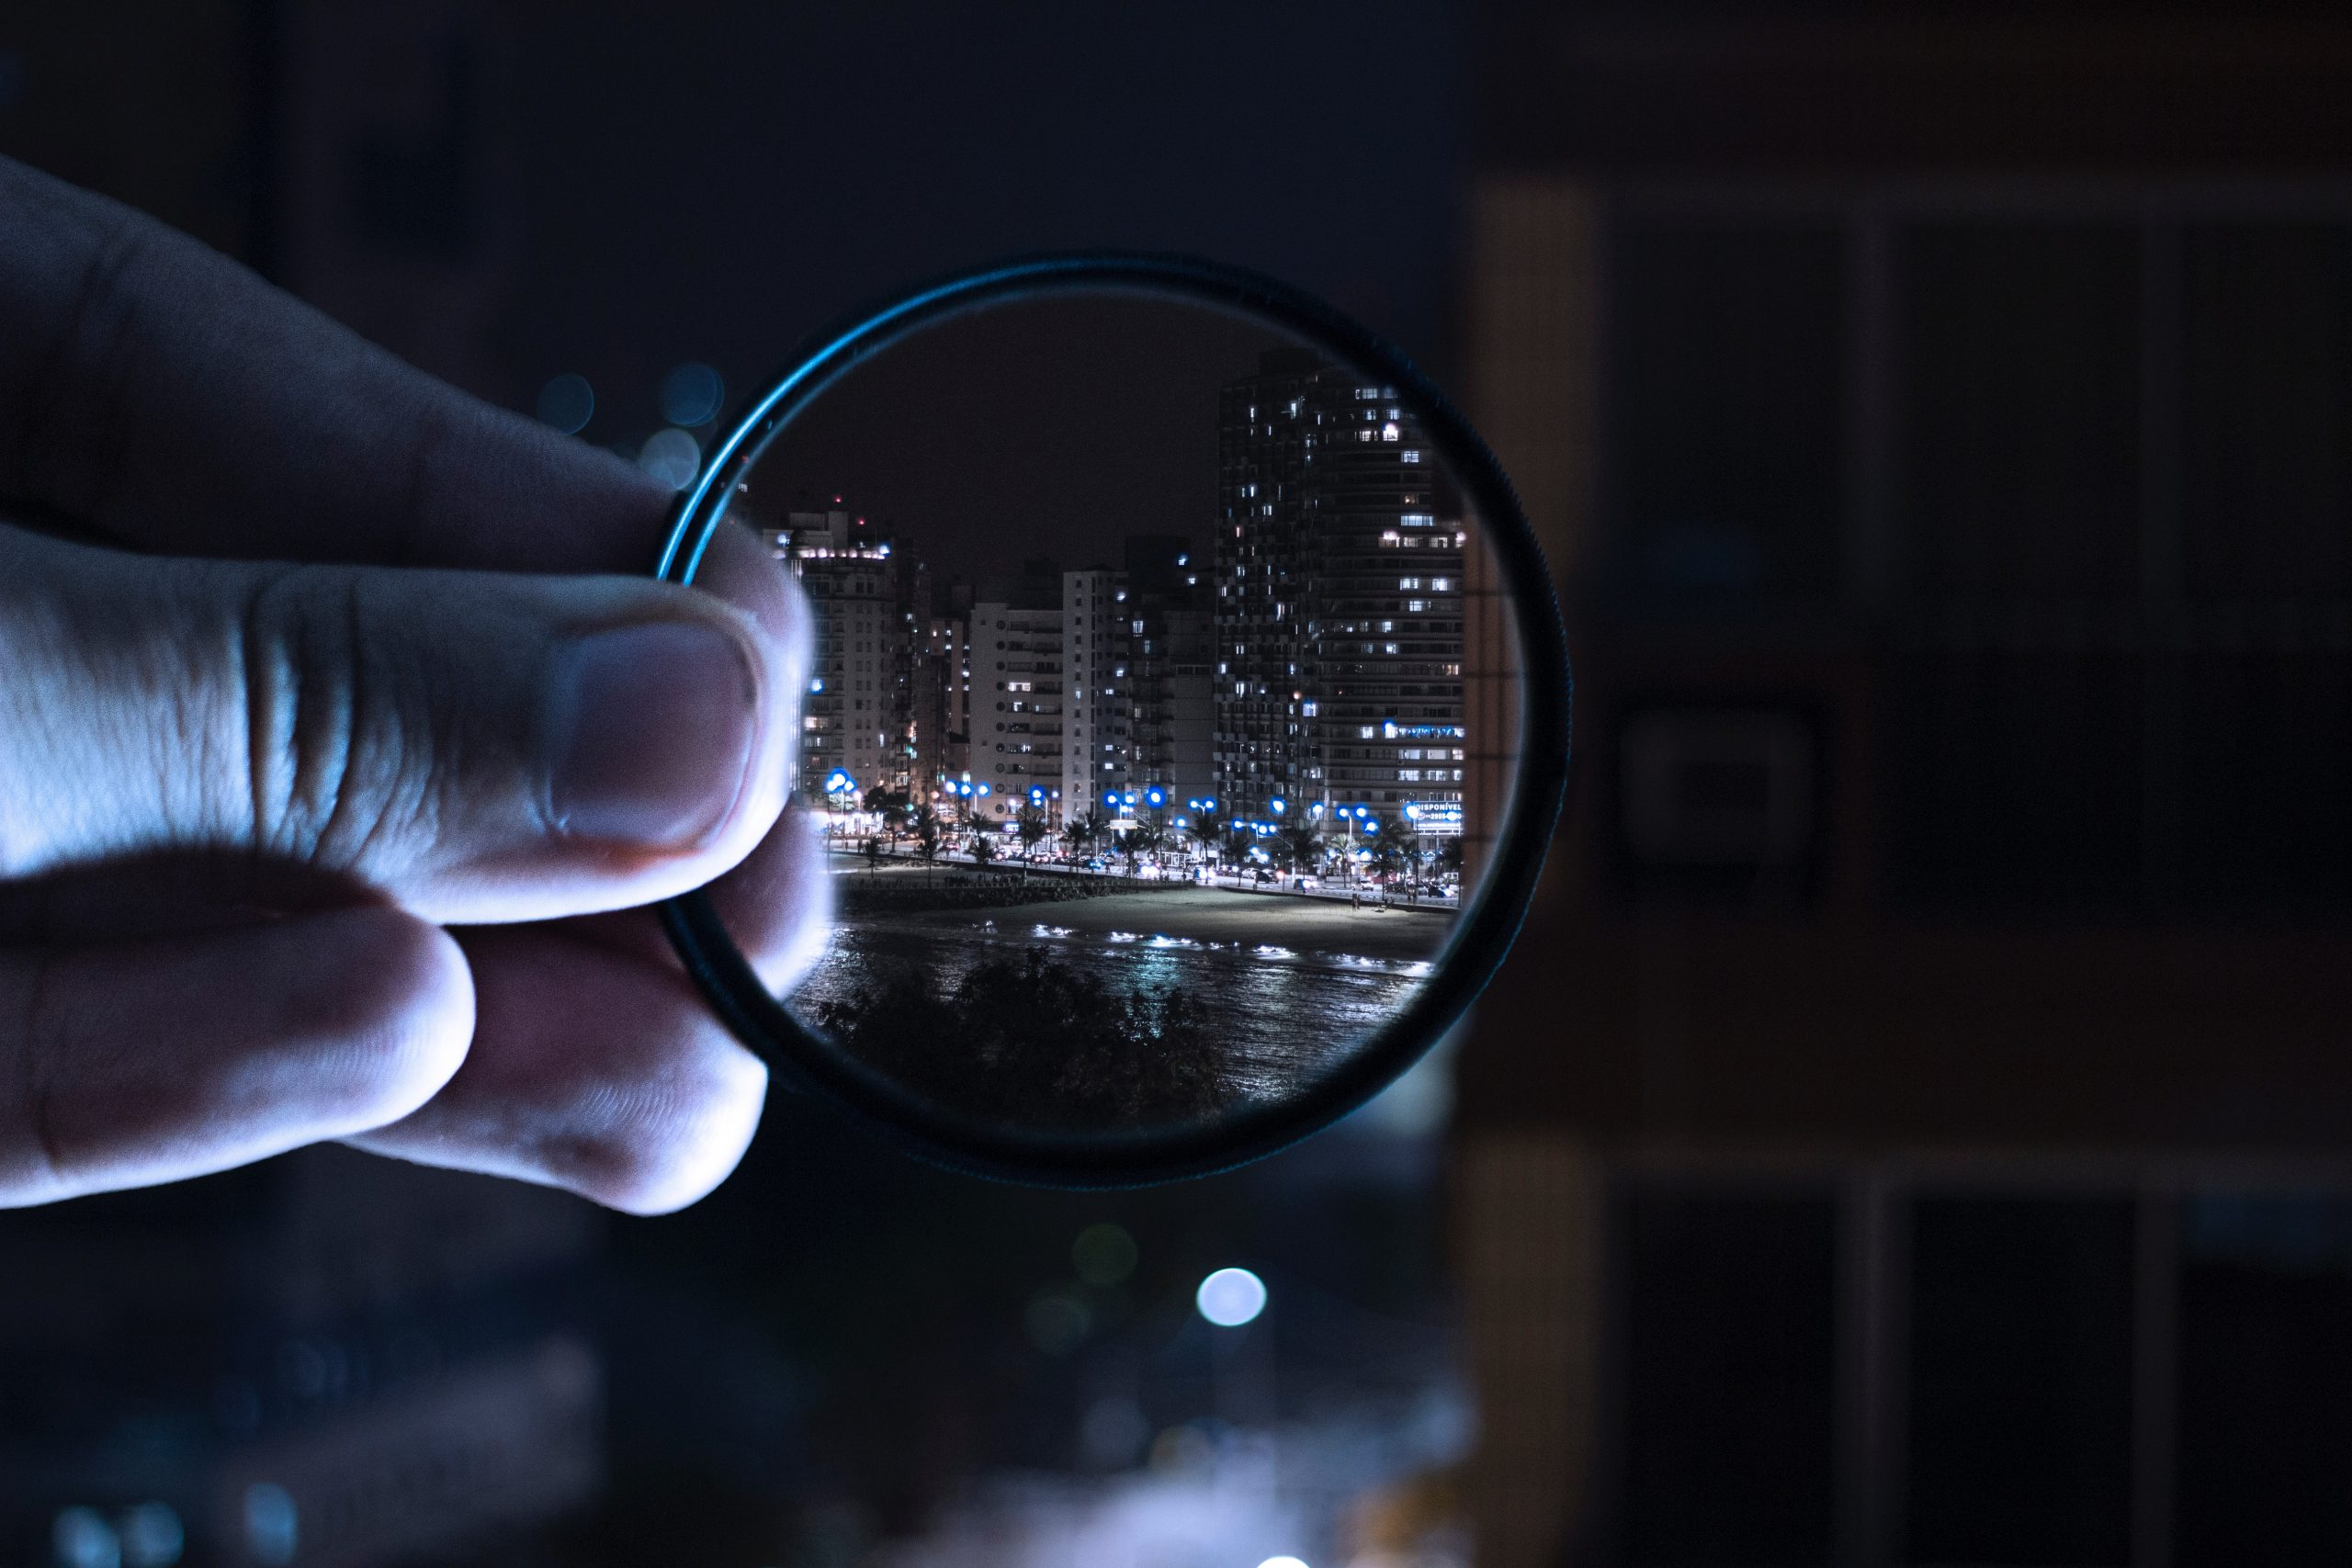 Insurance archeologist holding magnifying glass up at nigh time cityscape